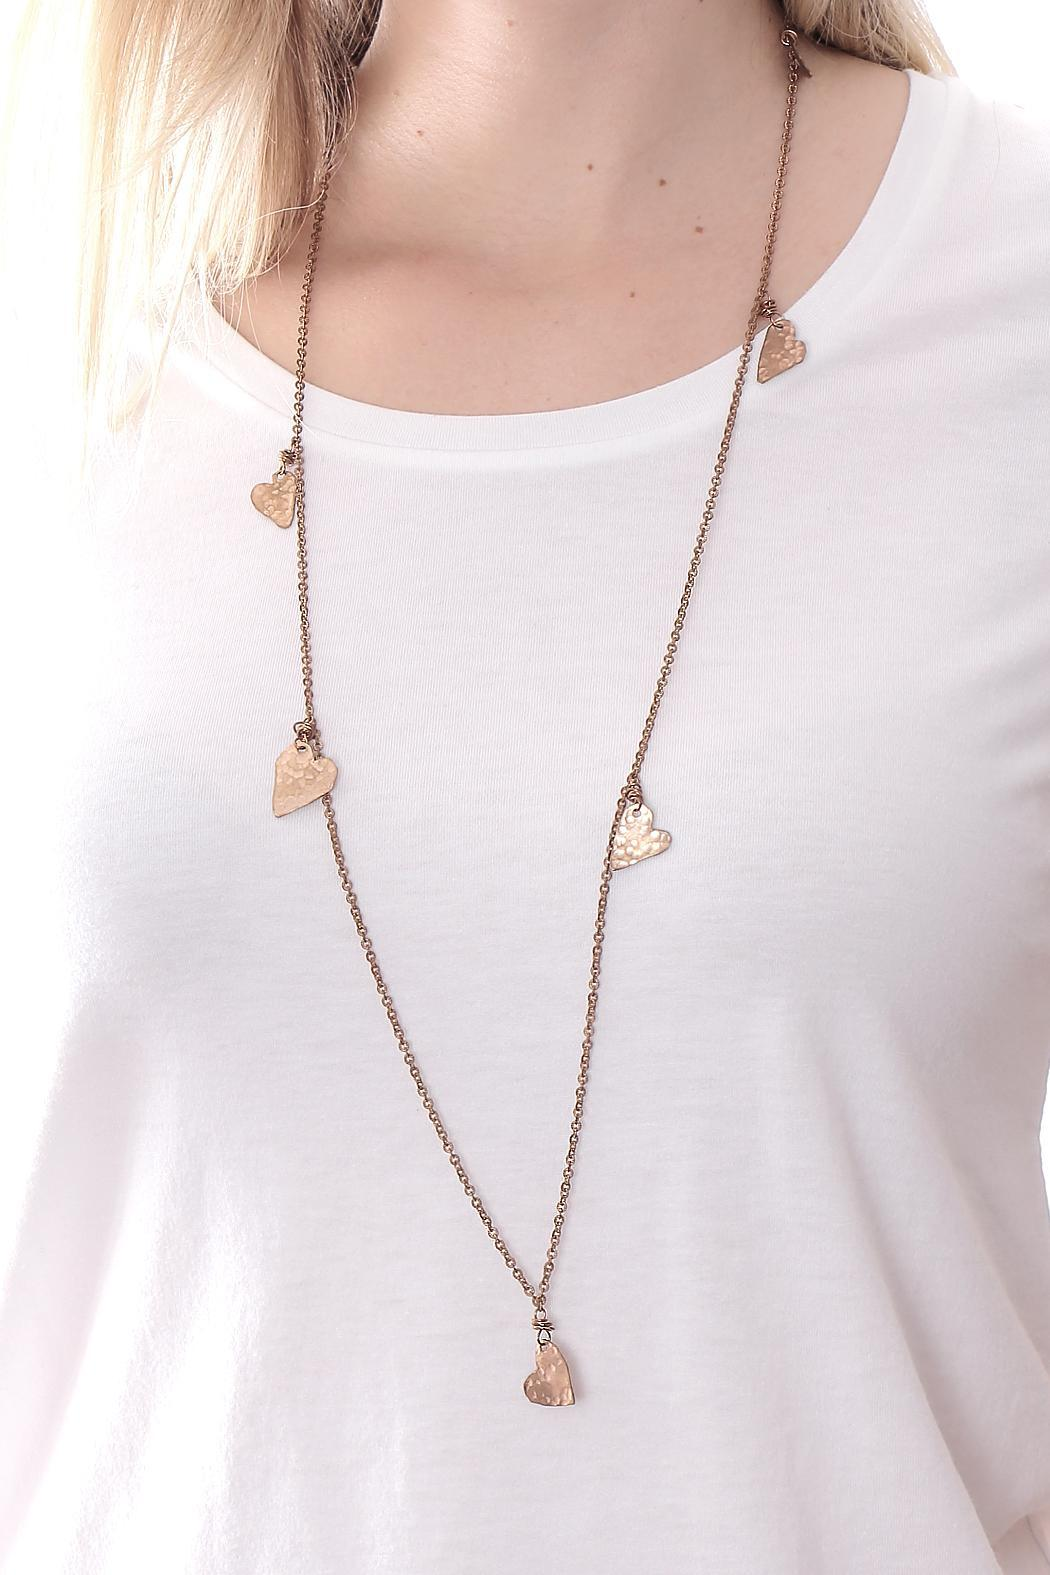 Cowgirl Chile Co. Jewelry Heart Station Necklace - Front Full Image